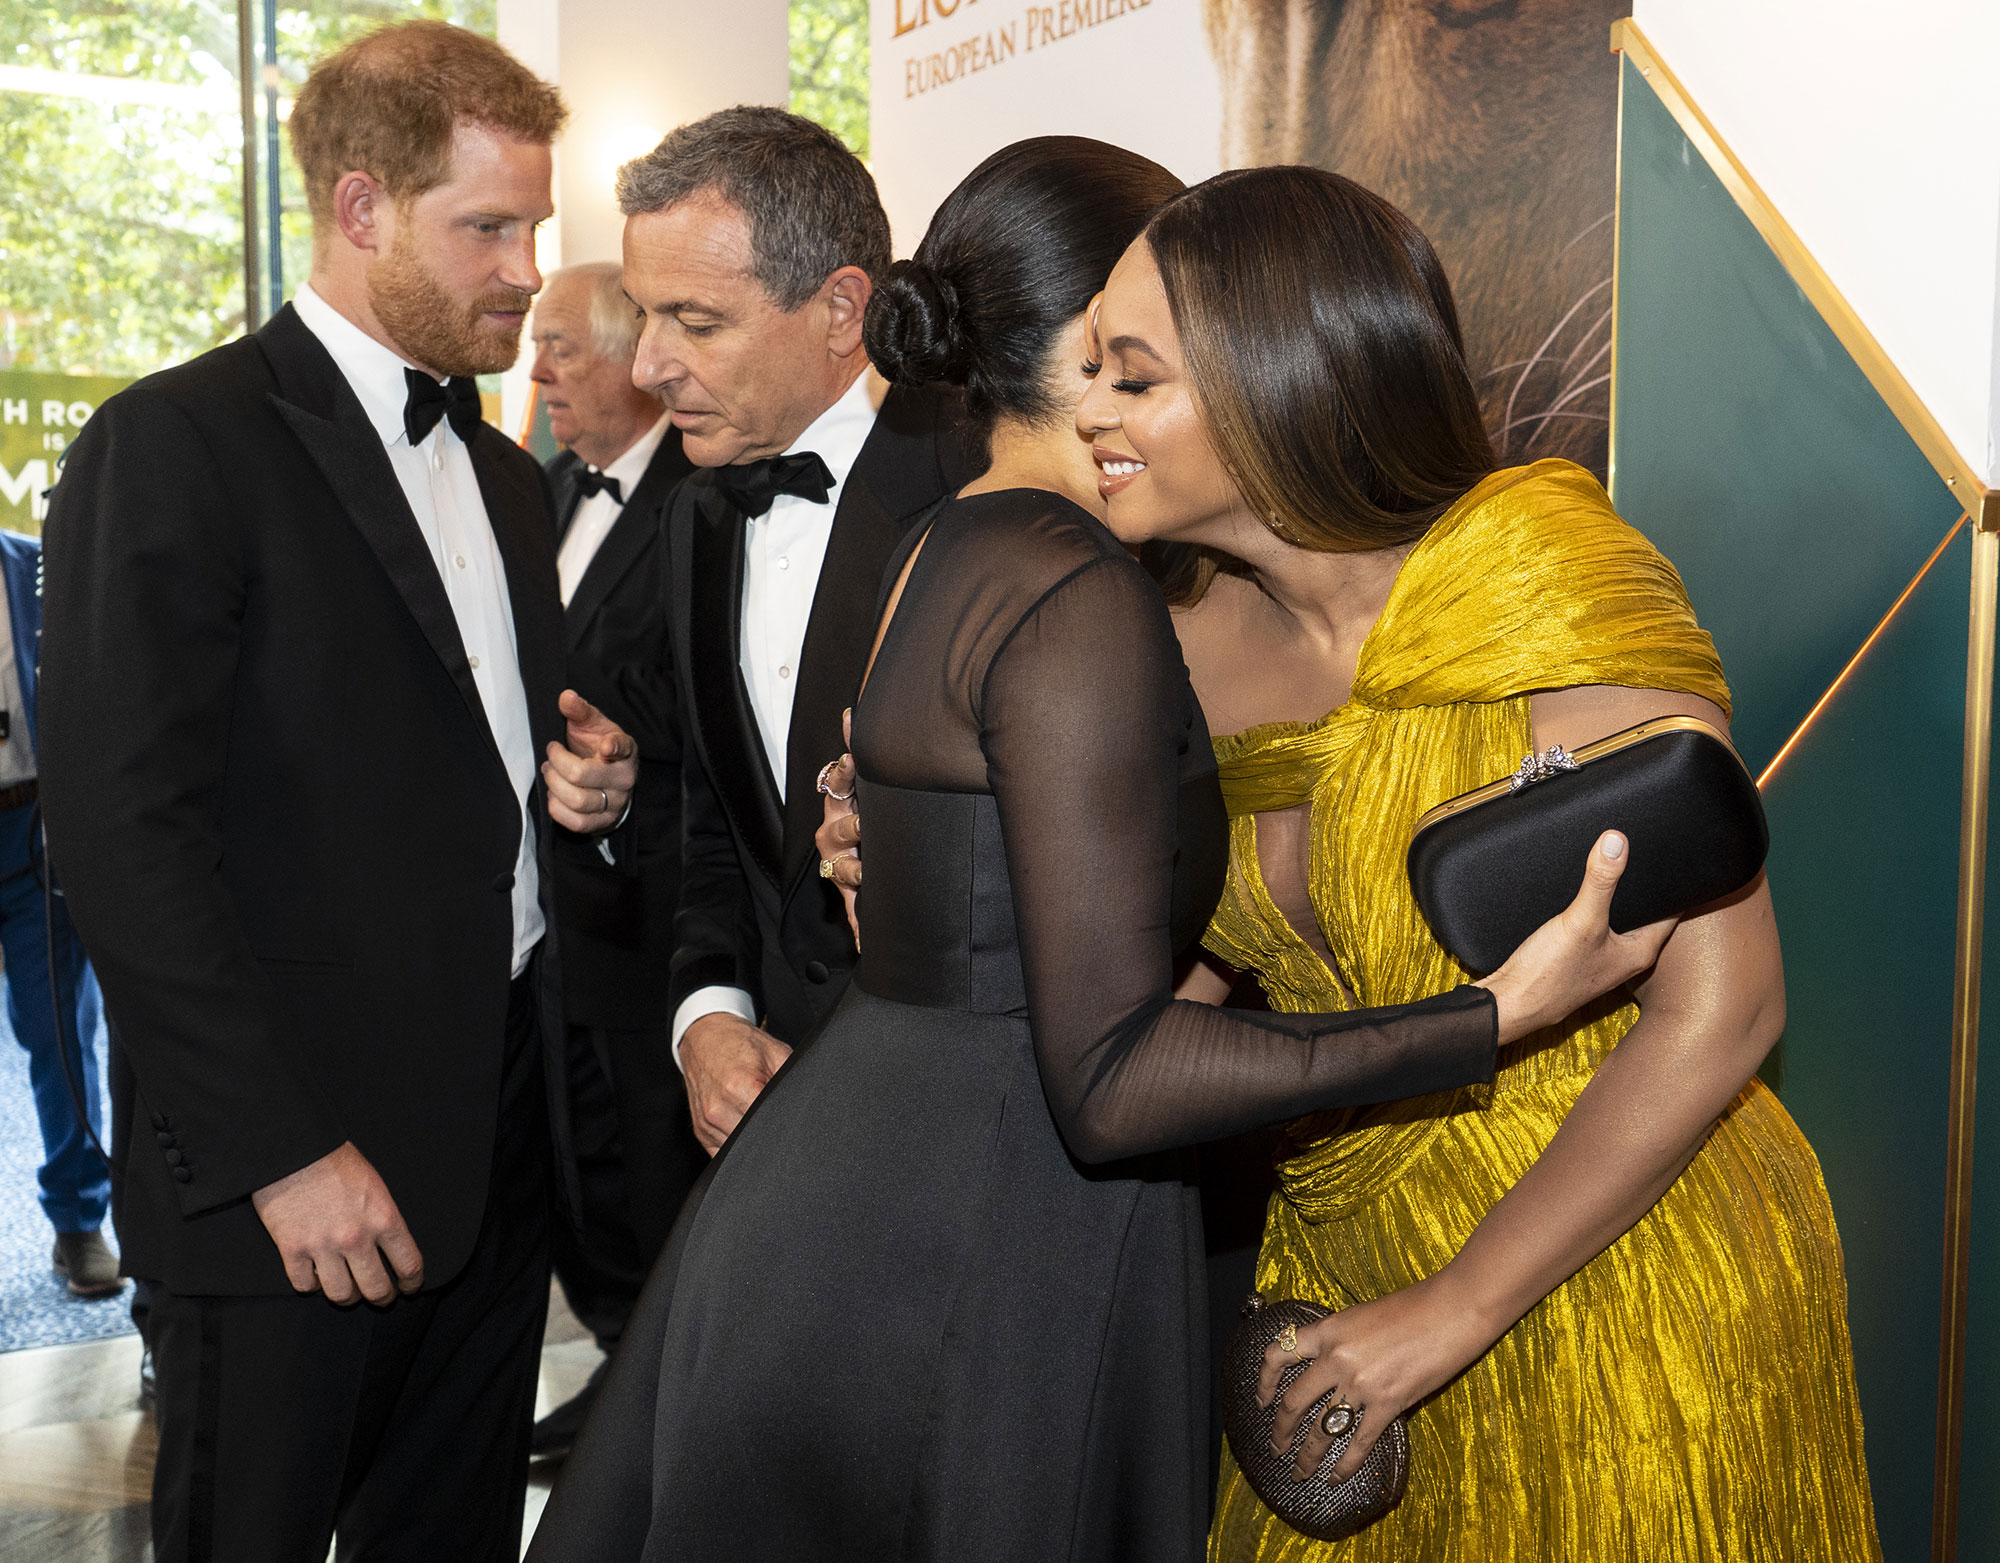 Prince Harry, Duke of Sussex (L) chats with Disney CEO Robert Iger as Meghan, Duchess of Sussex (2nd R) embraces Beyonce Knowles-Carter